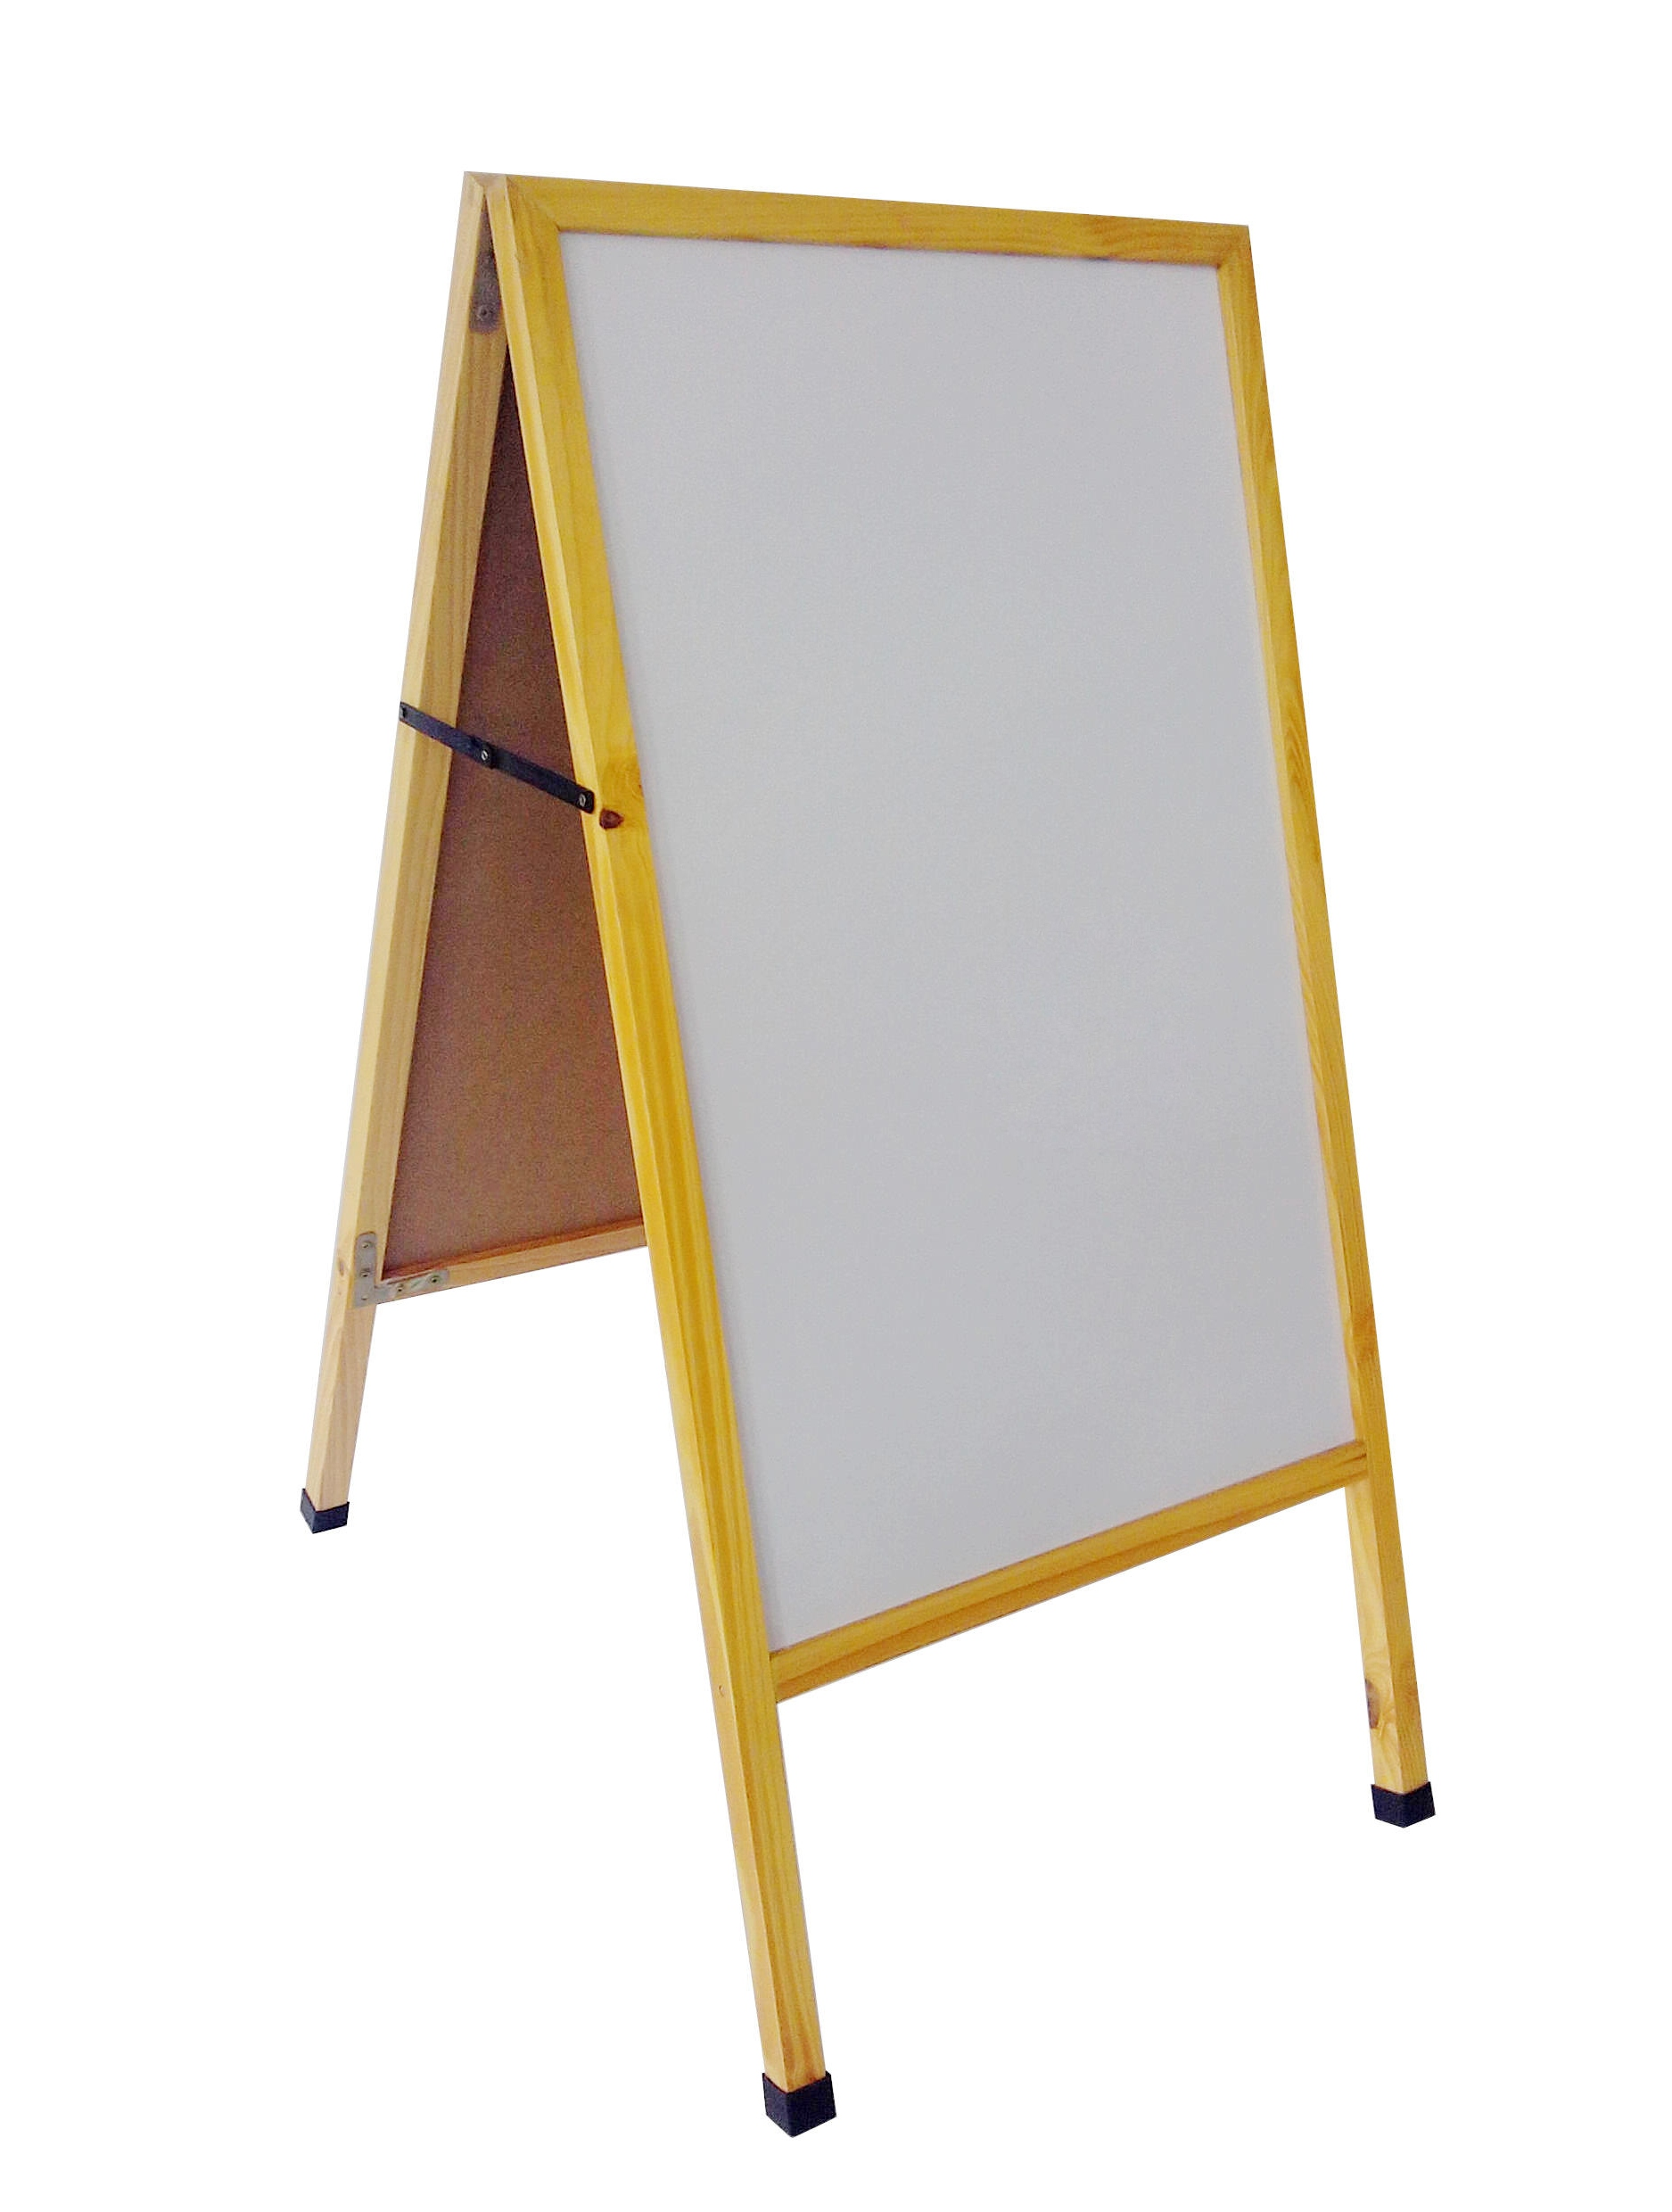 A Frame Sidewalk Sign Menu Board White Dry Erase Board